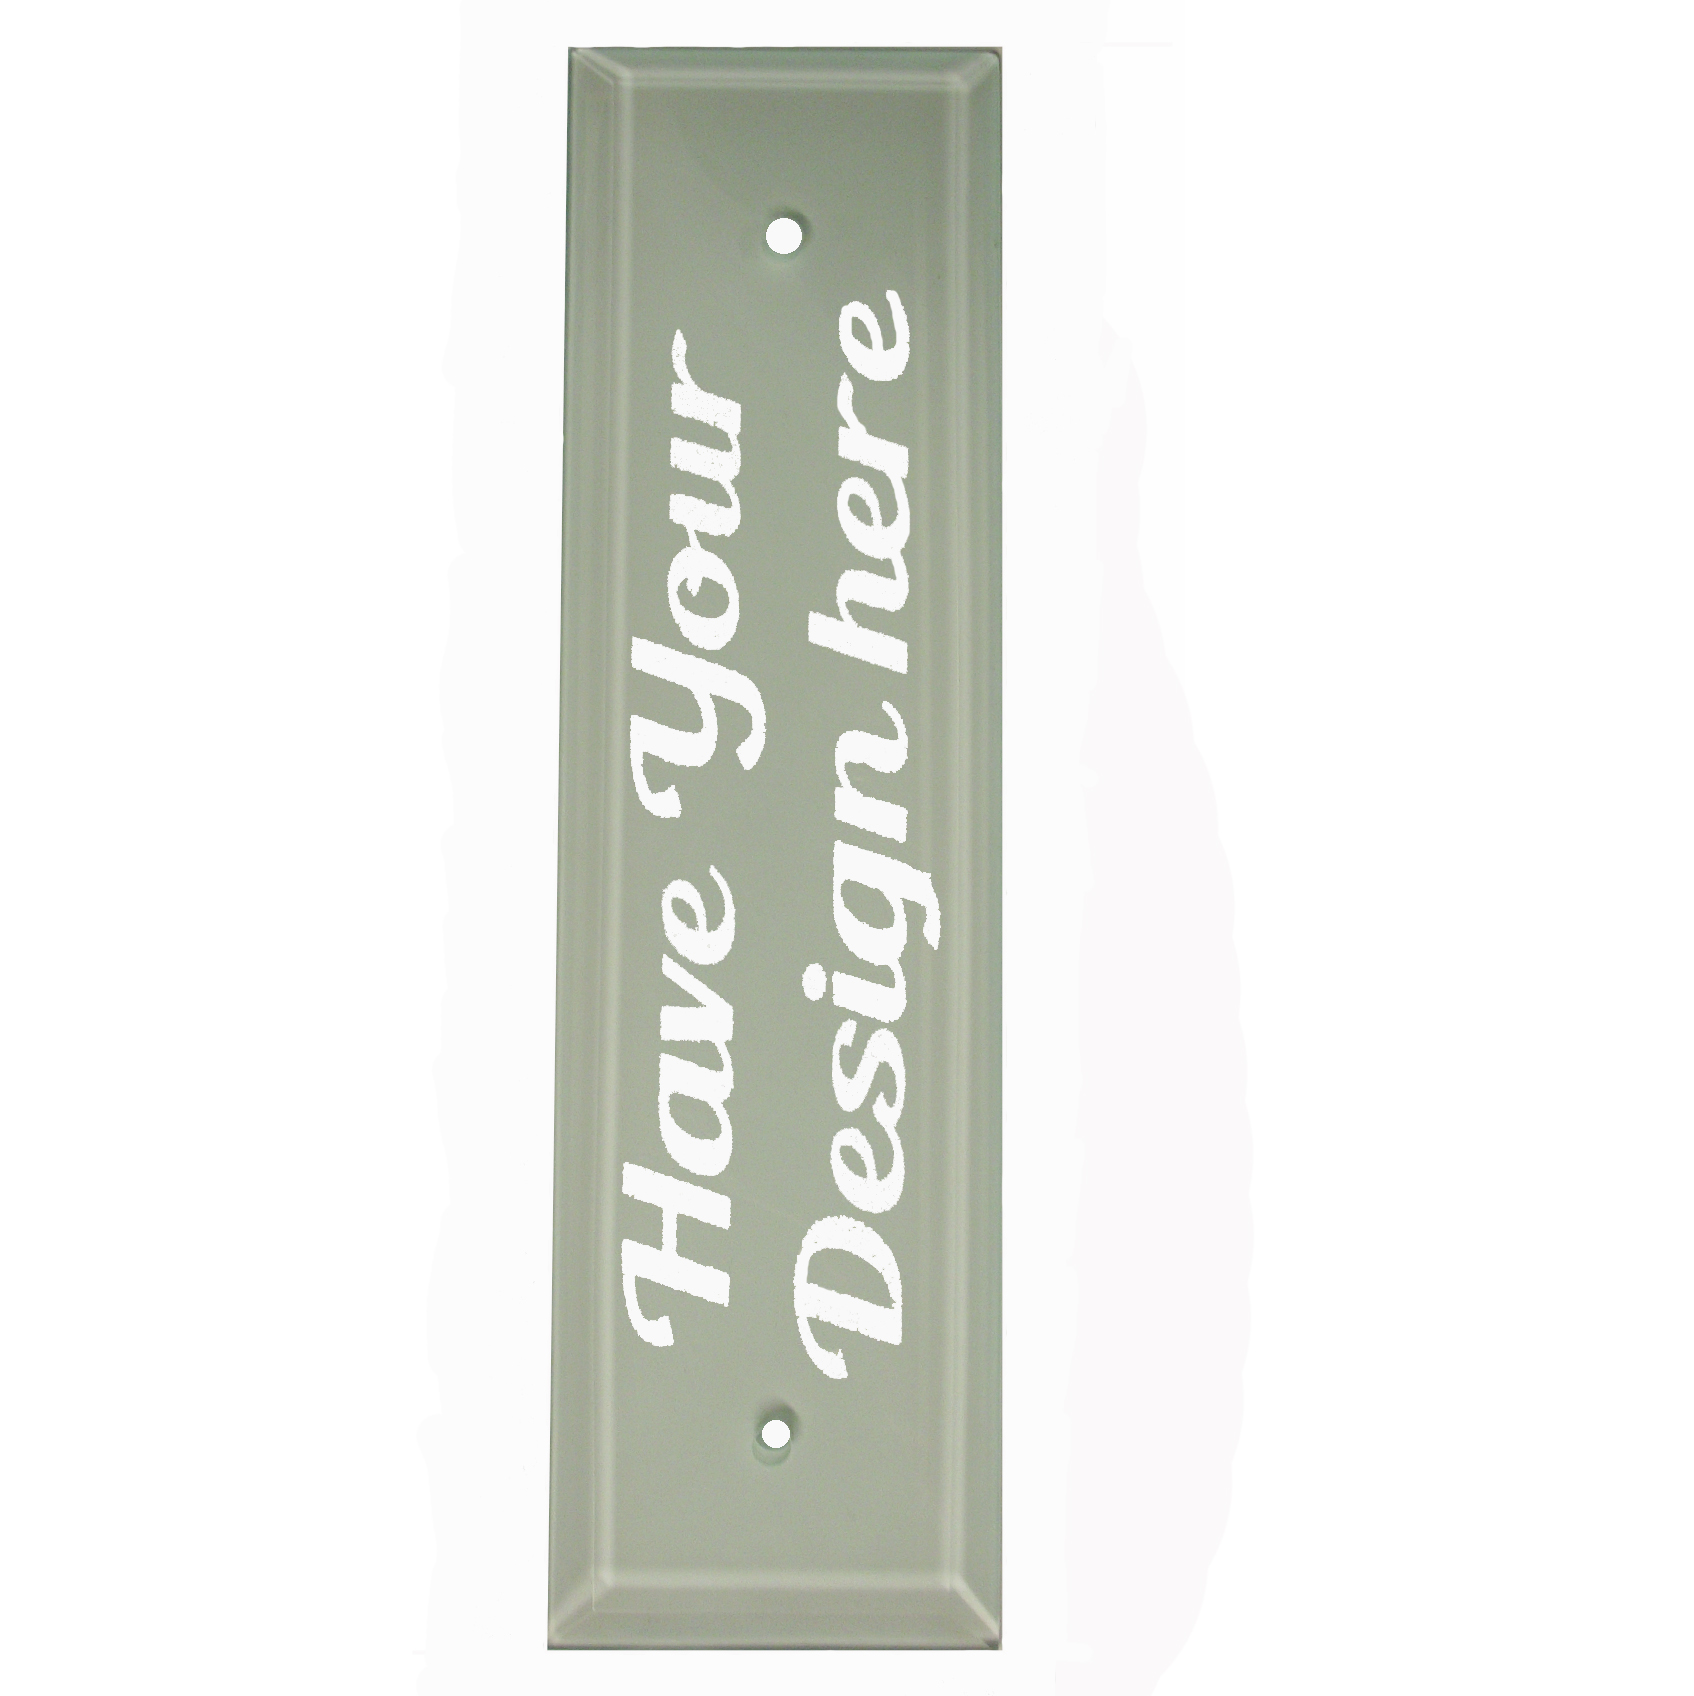 Flosted Glass Own Design Door Push Plate